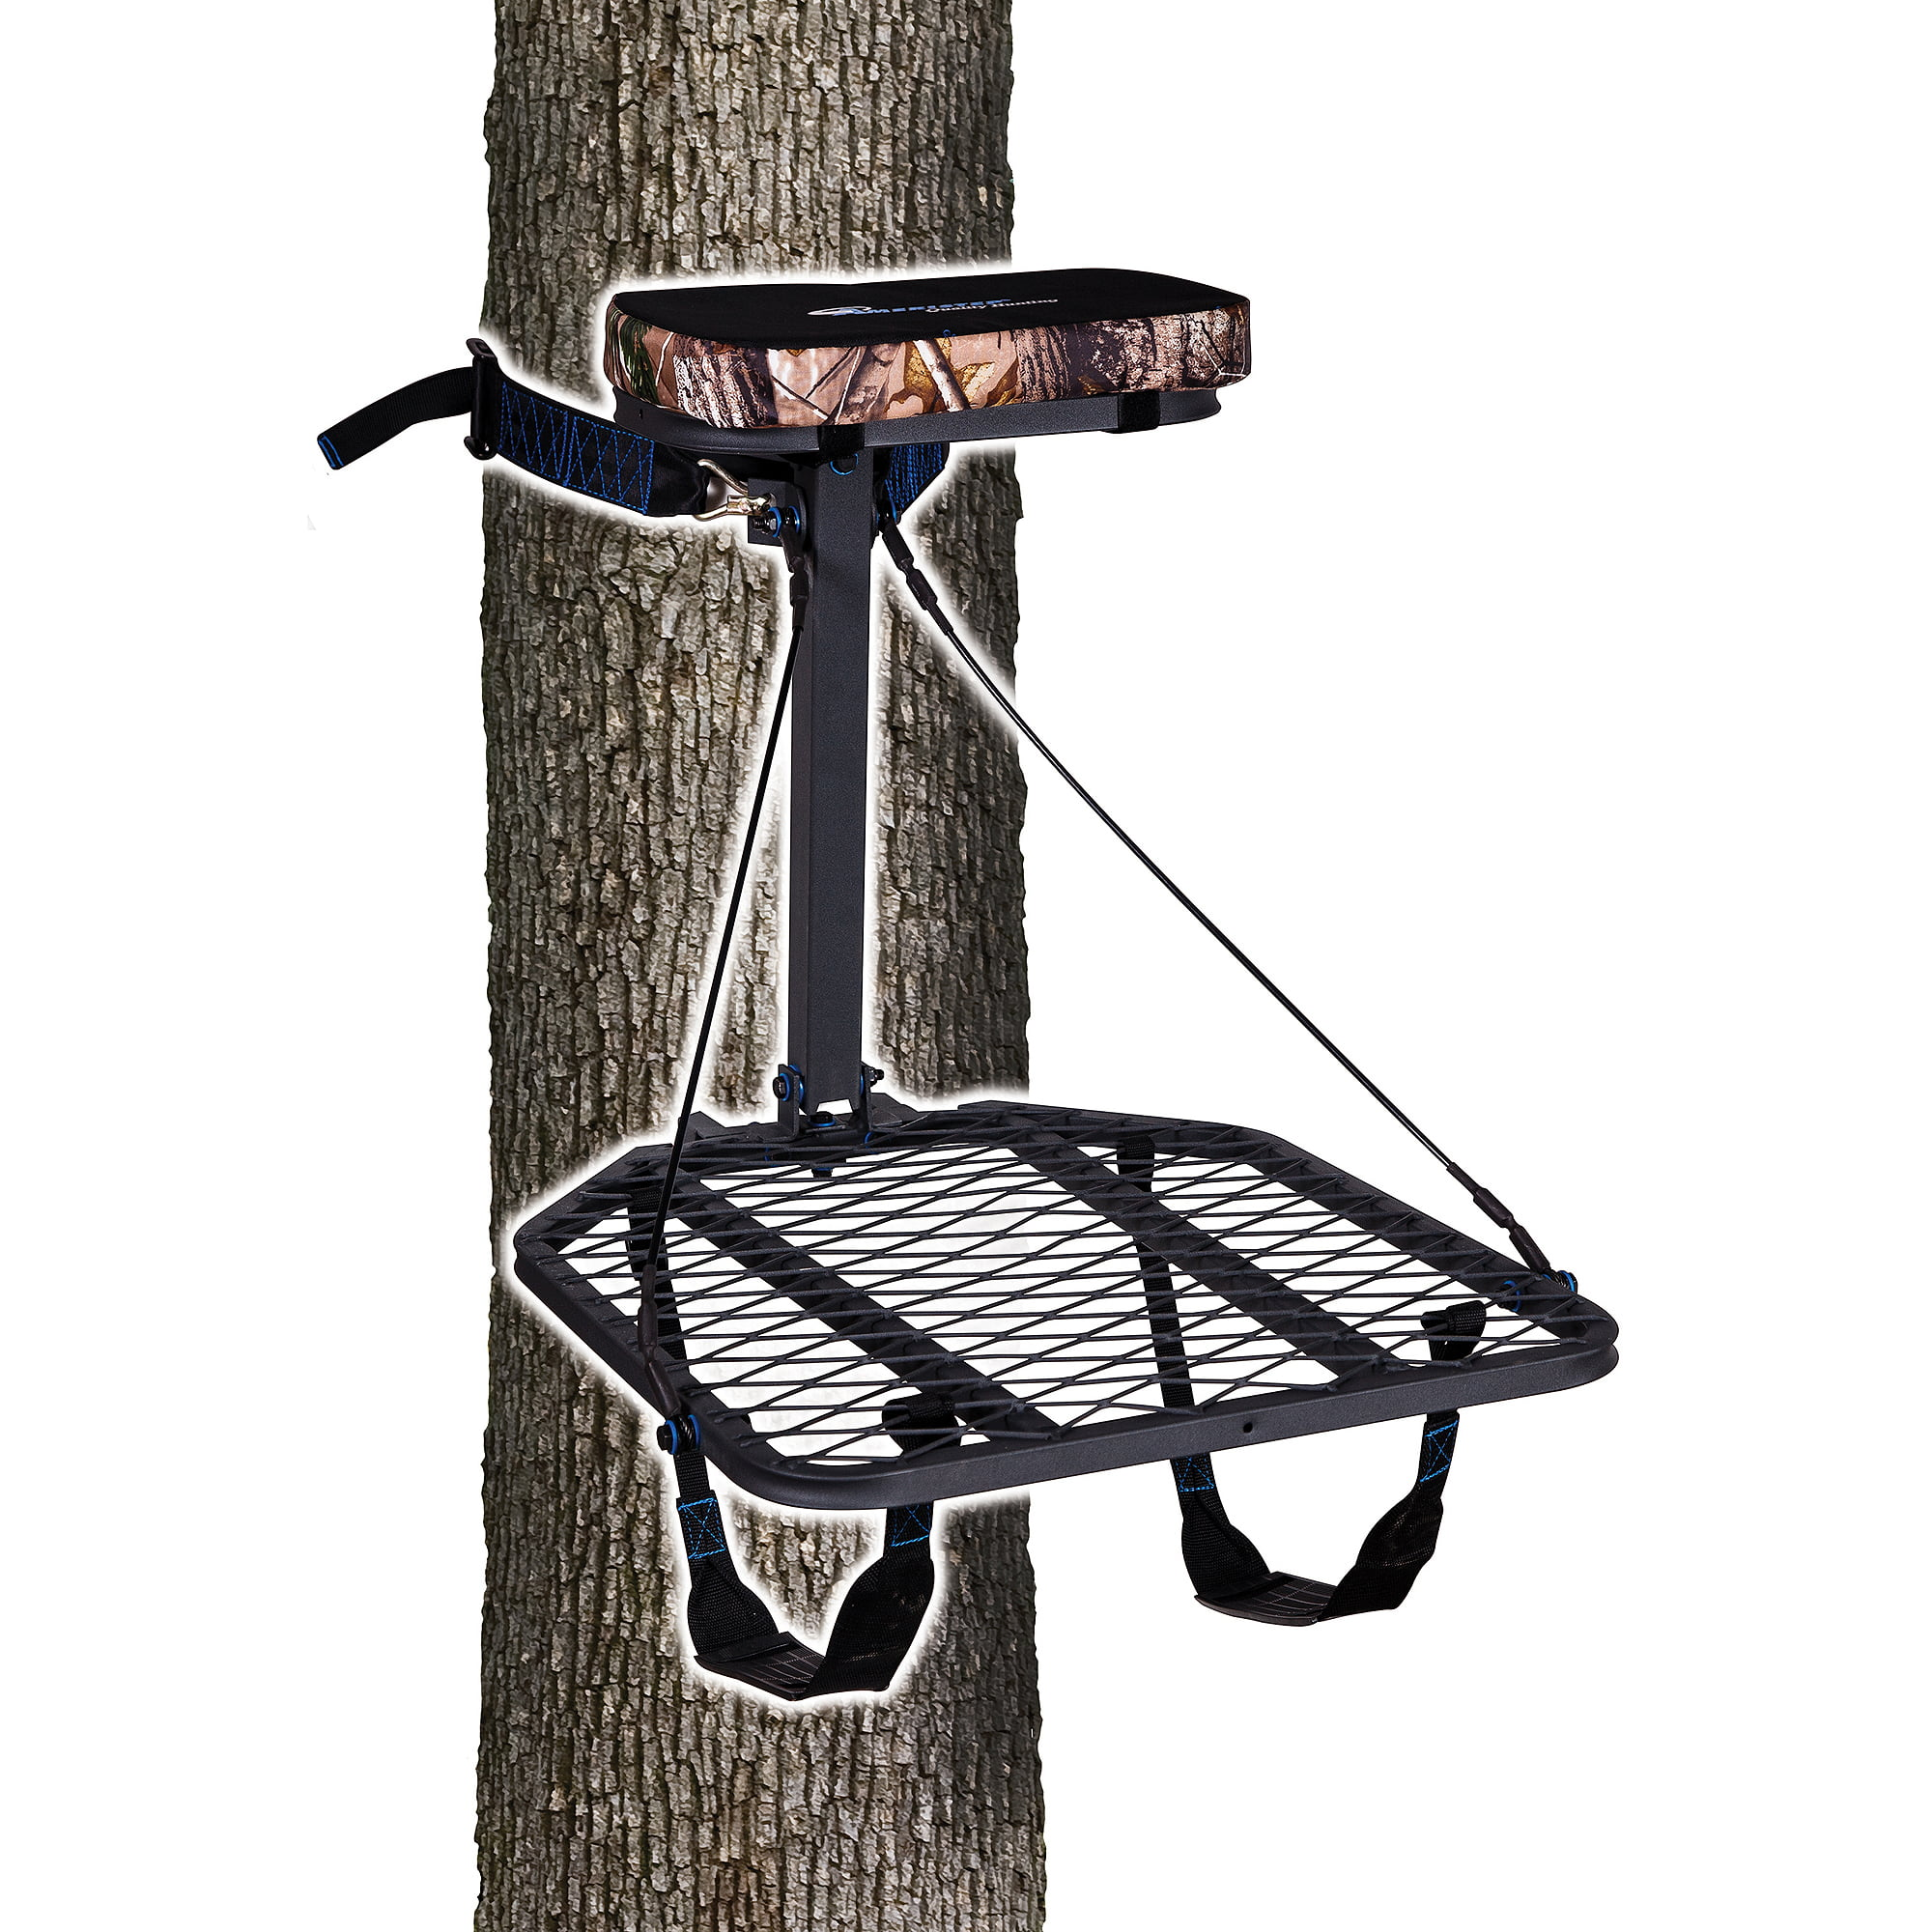 Ameristep Hang-On Treestand with Realtree Seat Cushion & Backpack Straps, includes Safety DVD by Ameristep